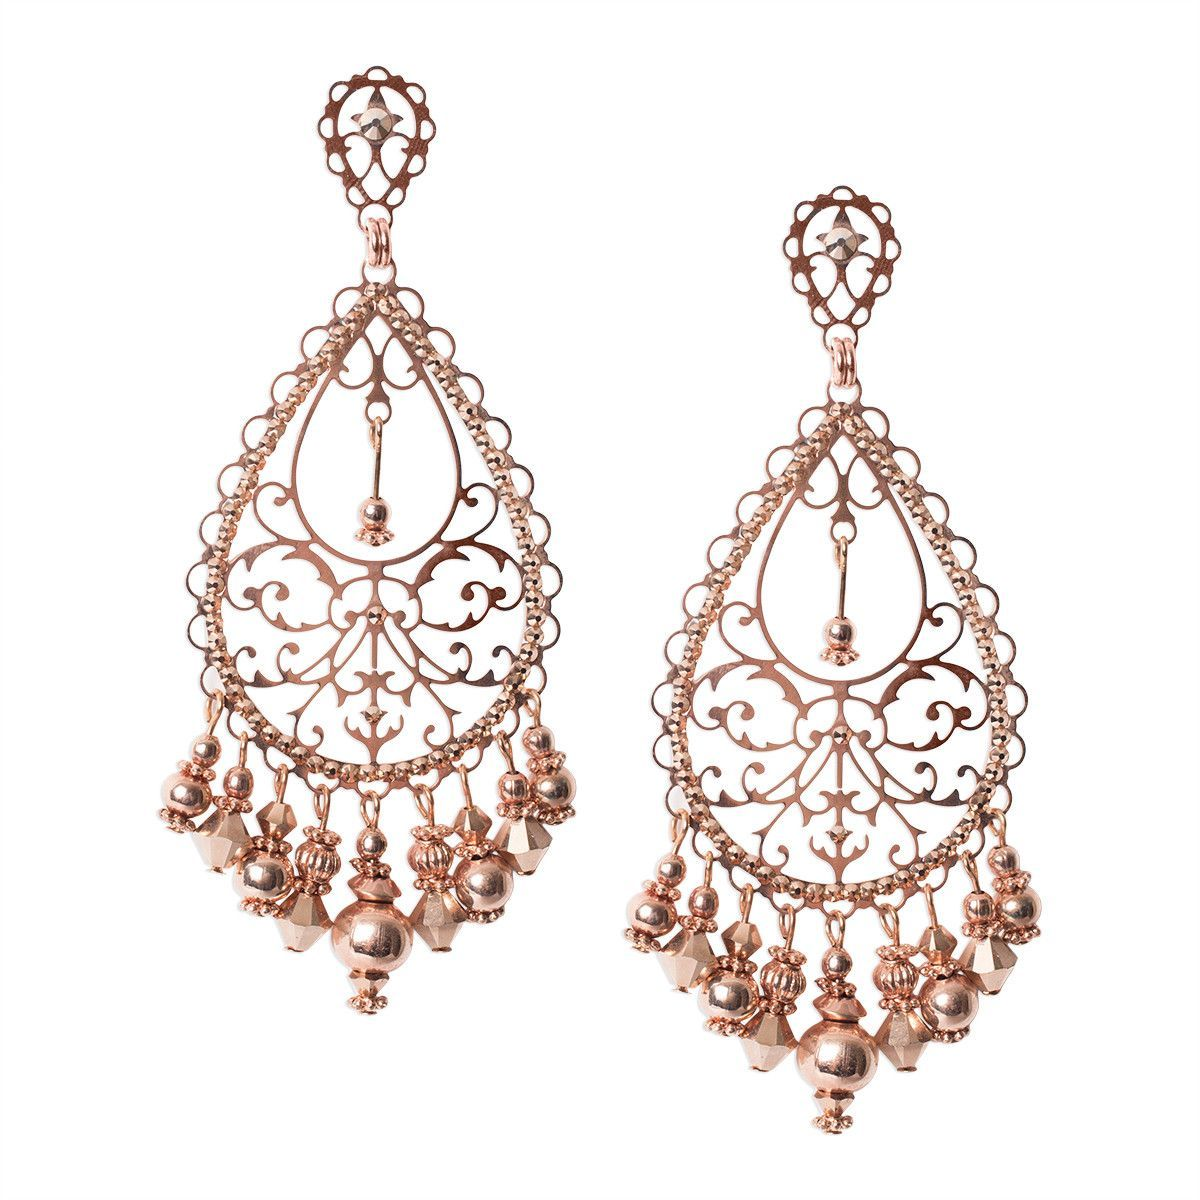 Rose Gold Filigree Drop Earrings with Dangles by LK Designs